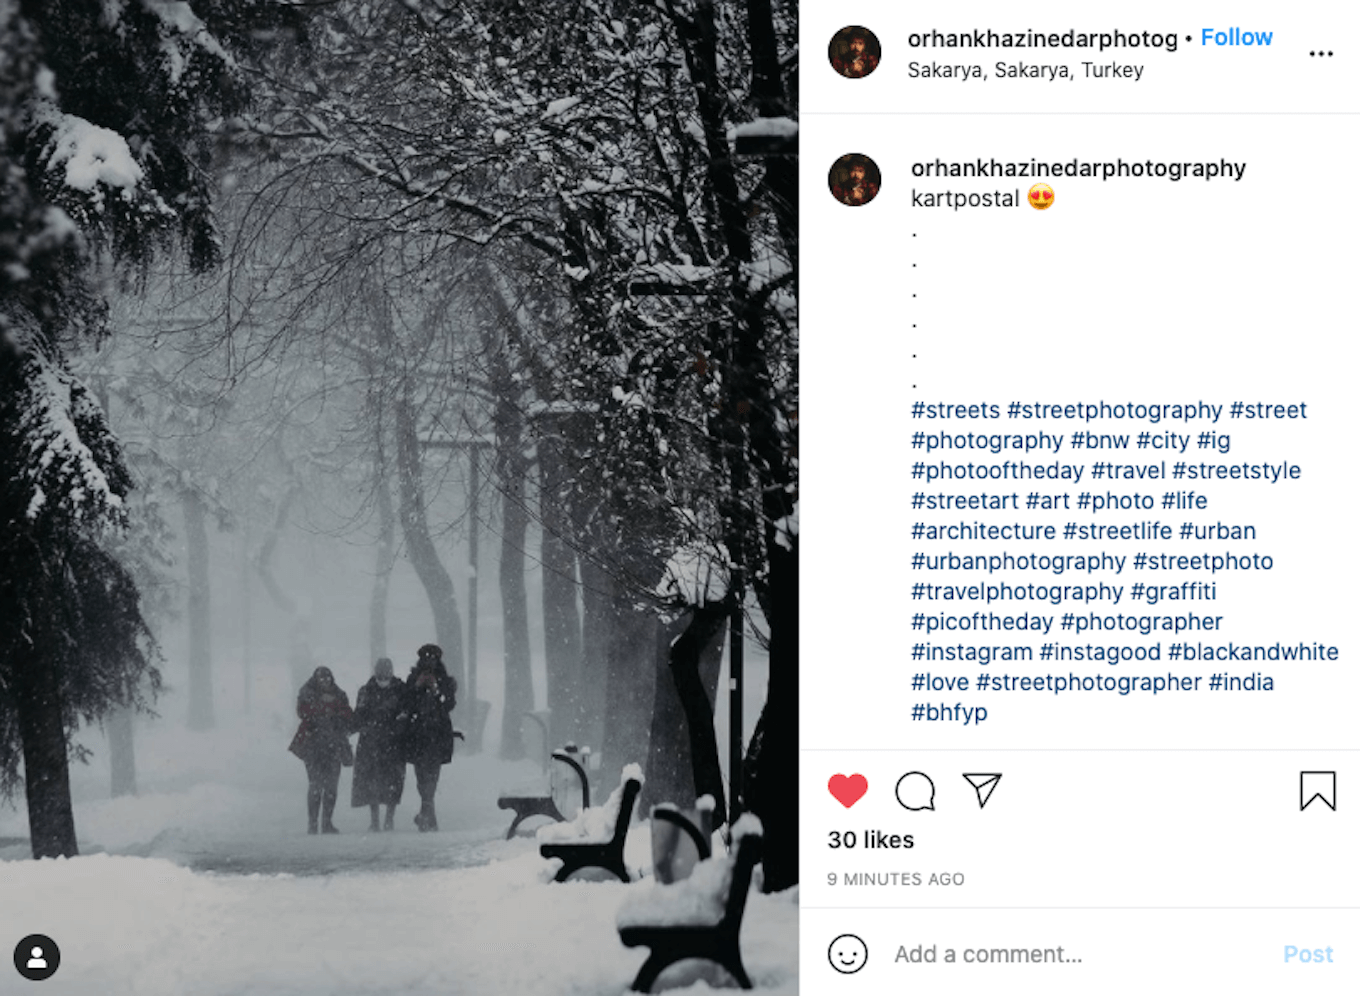 An Instagram screenshot showing good use of negative space with three people walking through the snow.